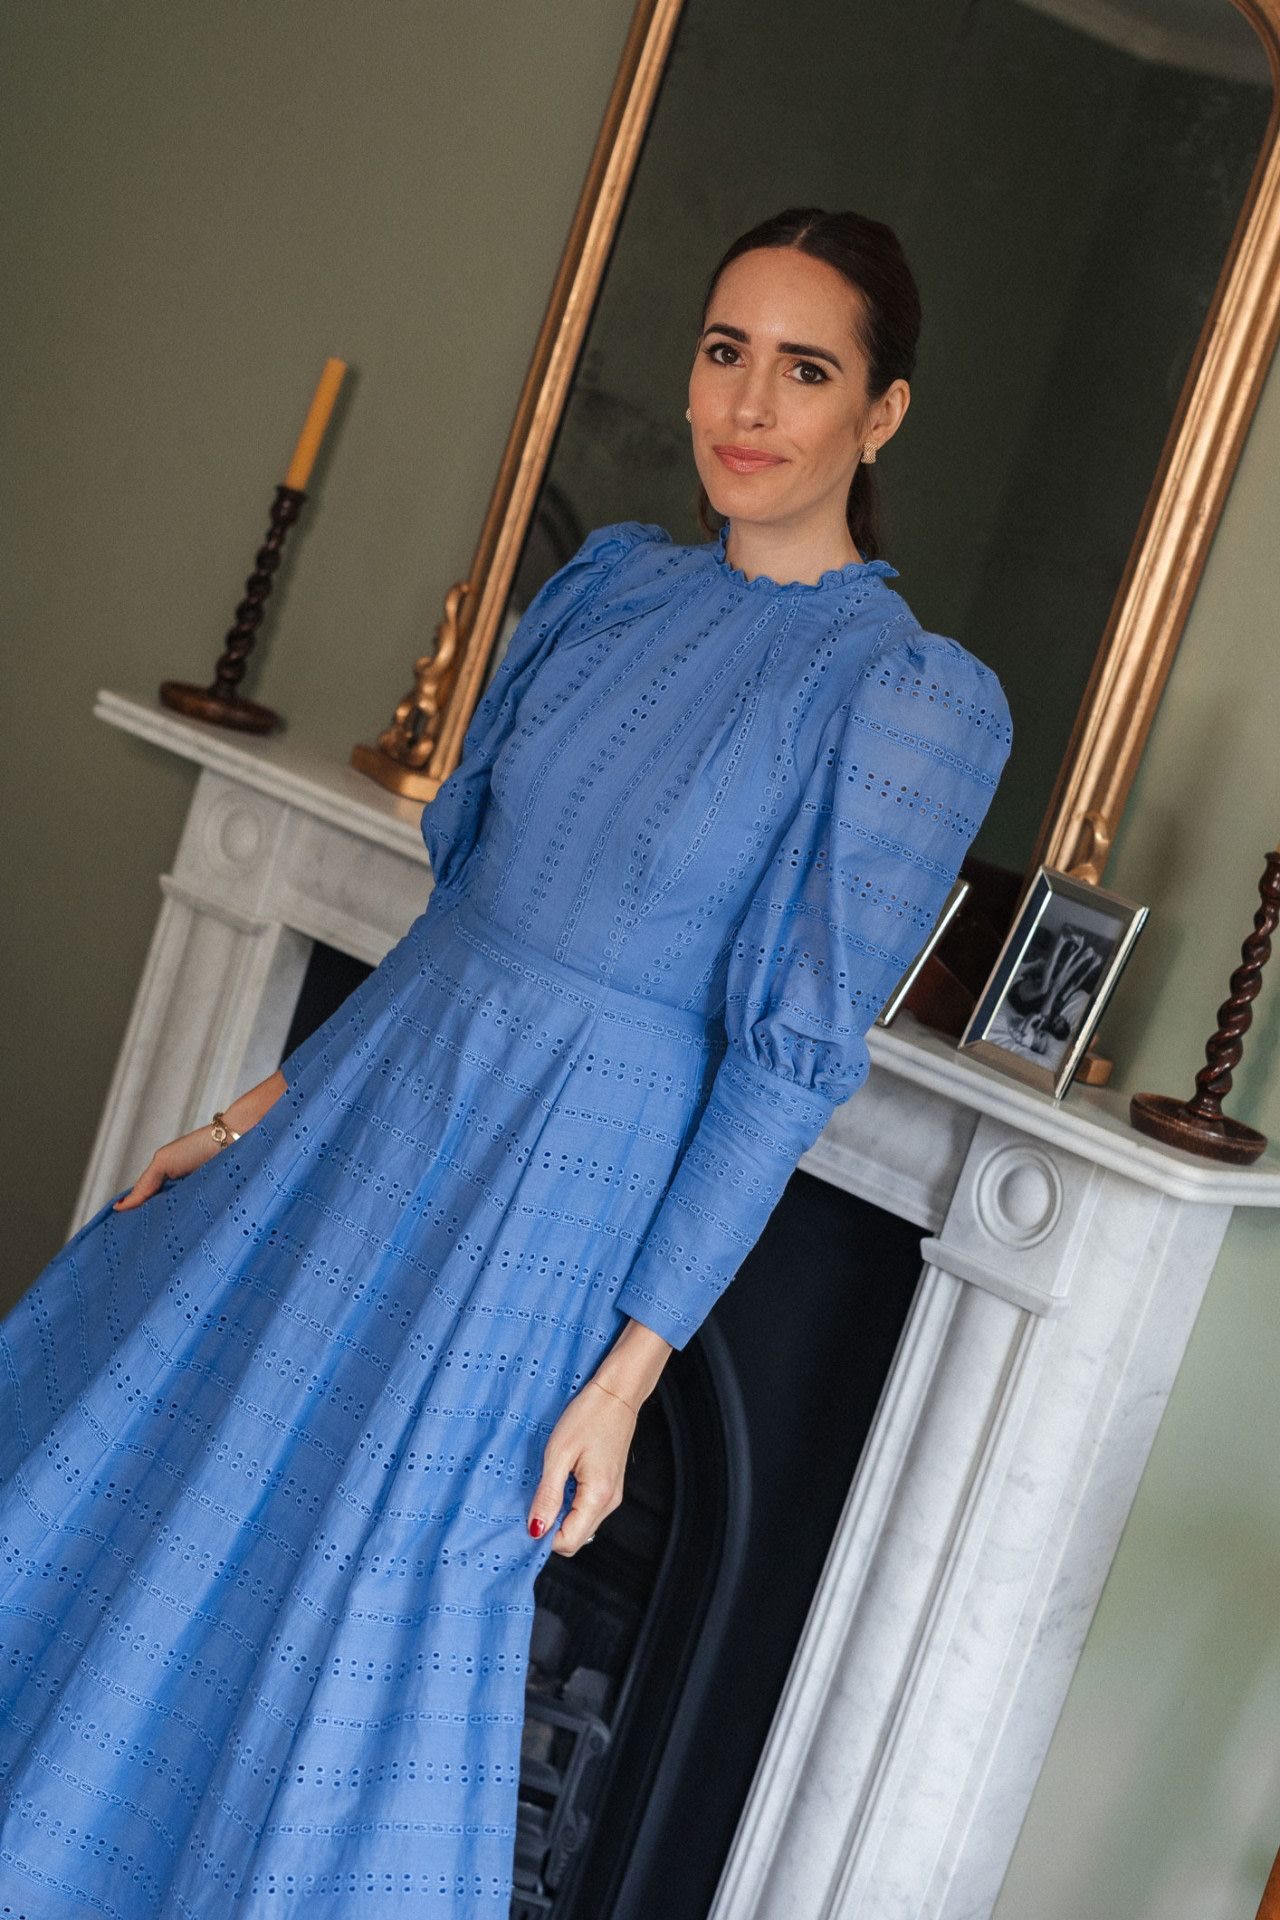 High Necks And Puff Sleeves My New Obsession Front Roe By Louise Roe Mini Dress With Sleeves Puff Sleeve Dresses Victorian Fashion [ 1920 x 1280 Pixel ]